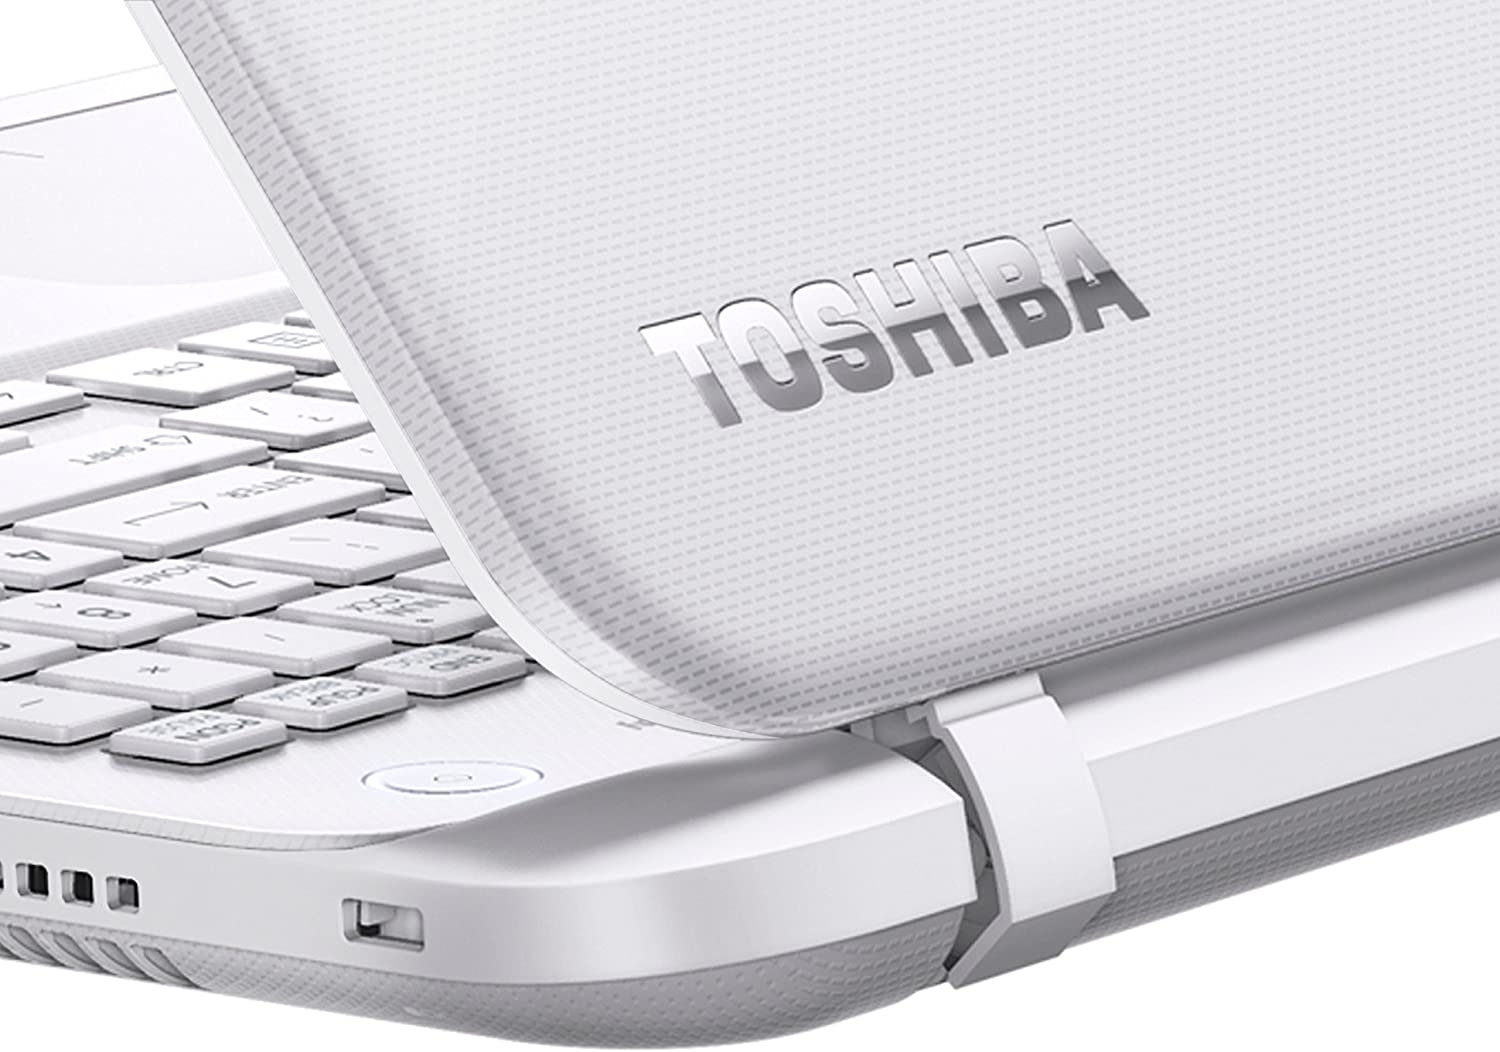 Toshiba Satellite L50-B-2EZ - Ordenador portátil (Portátil, Clickpad, Windows 8.1 , Ión de Litio, 64-bit, Color Blanco): Amazon.es: Informática